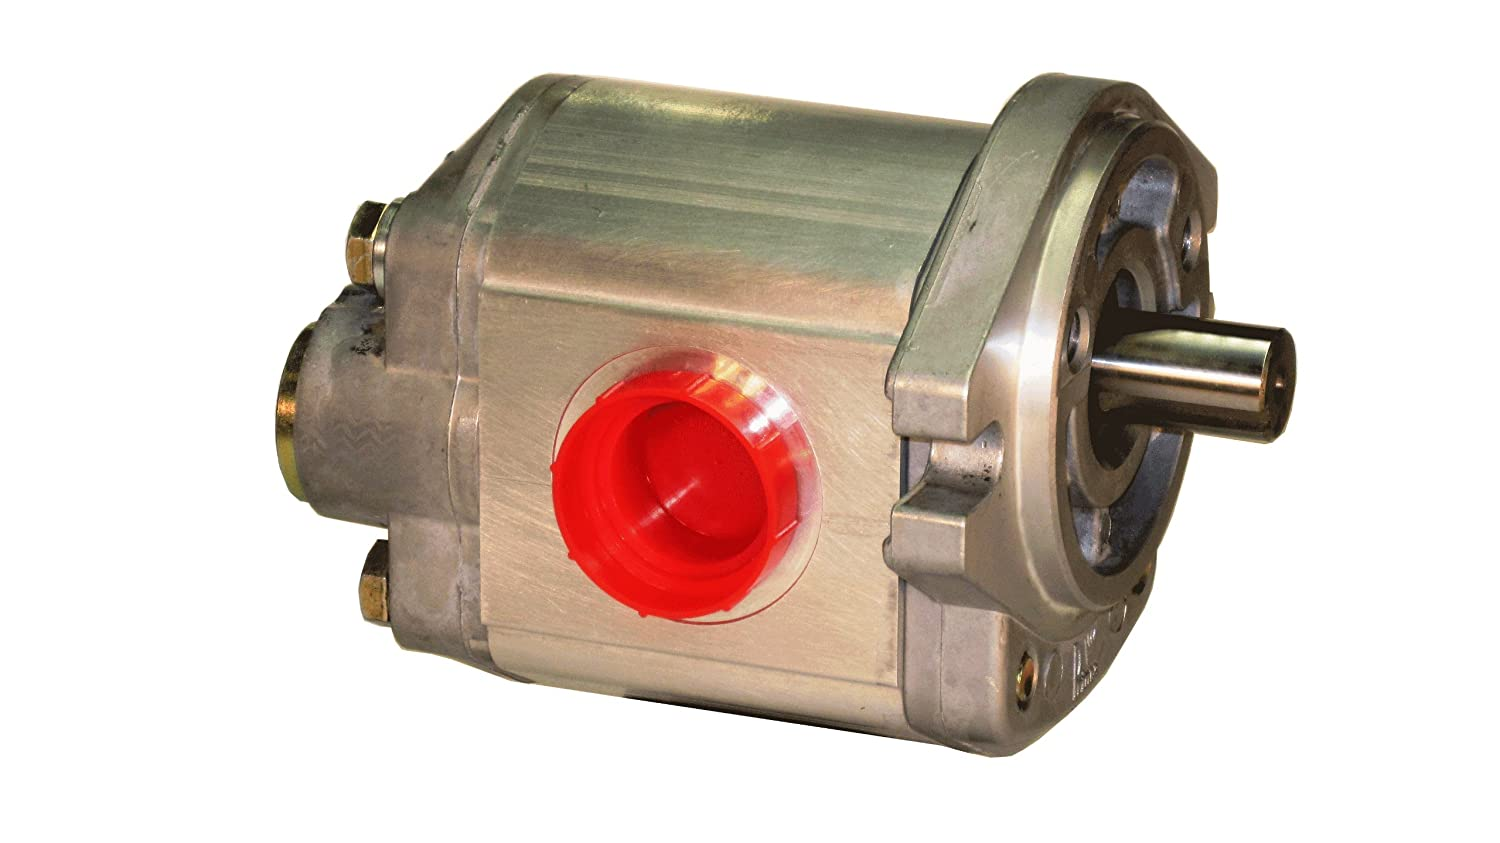 Aluminum Prince Manufacturing Corporation Prince Manufacturing SP20B06C9H2-L Hydraulic Gear Pump 14.80 HP Motor 6.92 GPM Maximum Flow Rate 3000 PSI Maximum Pressure Self-Lubricating Counter Clockwise Rotation SAE A Flange